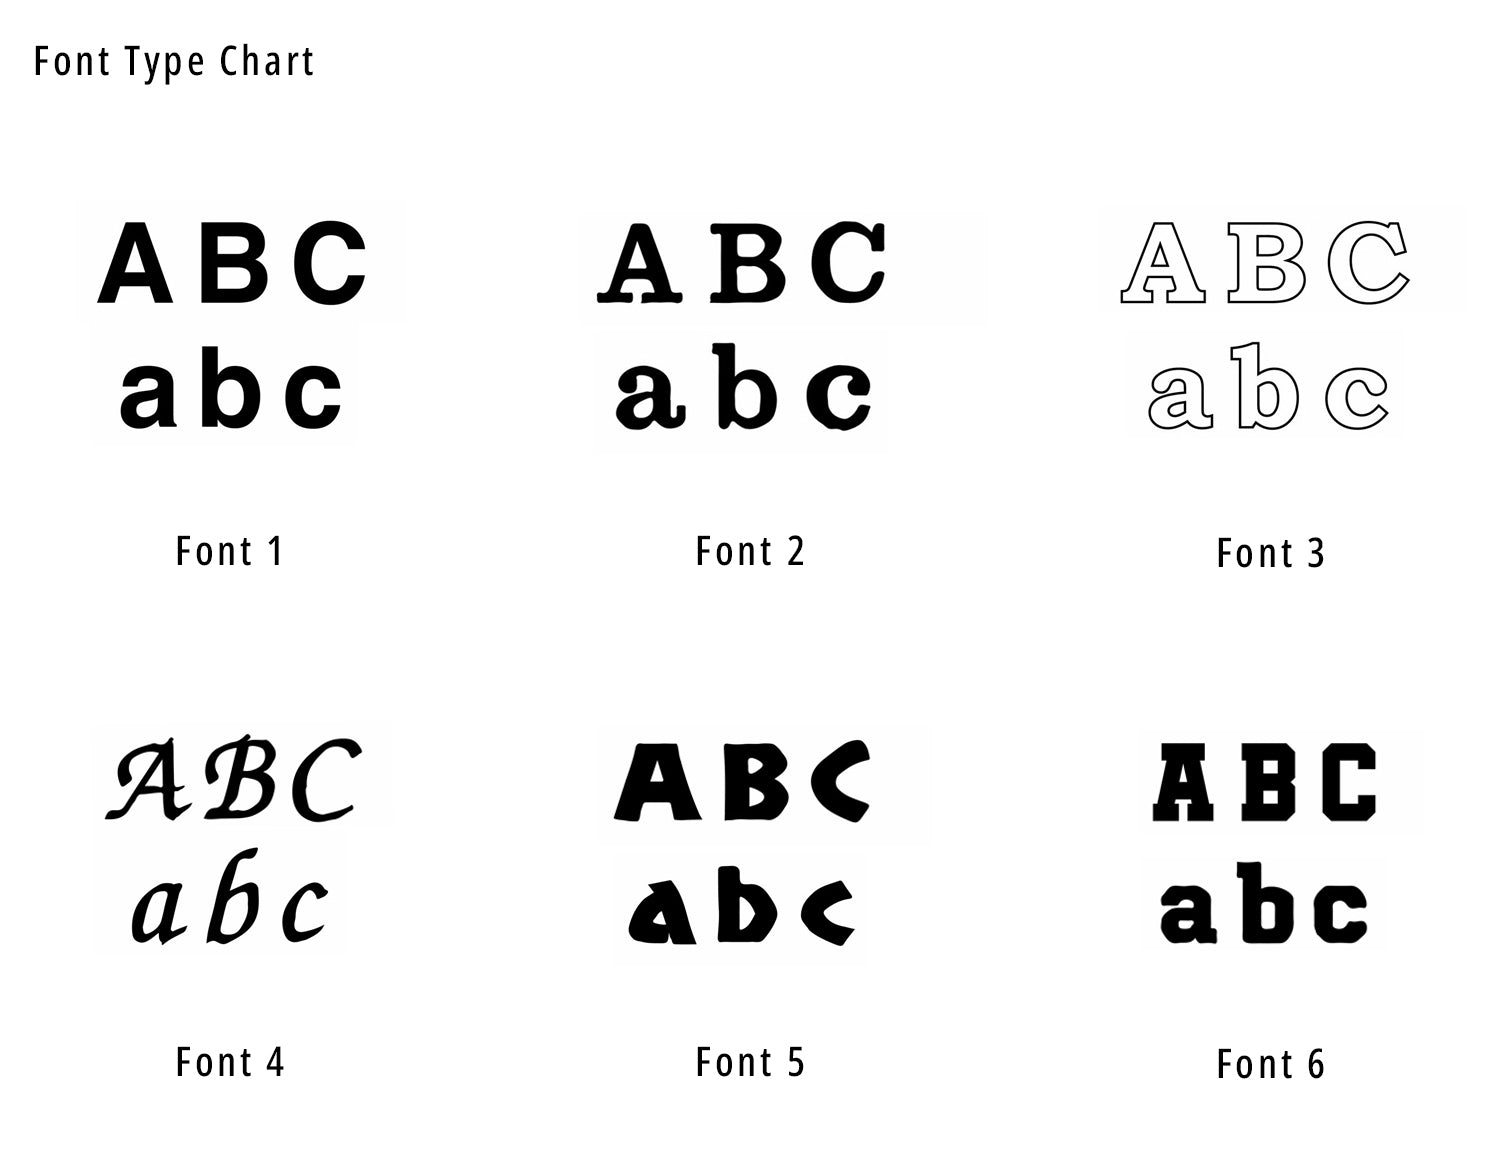 embroidery font type chart